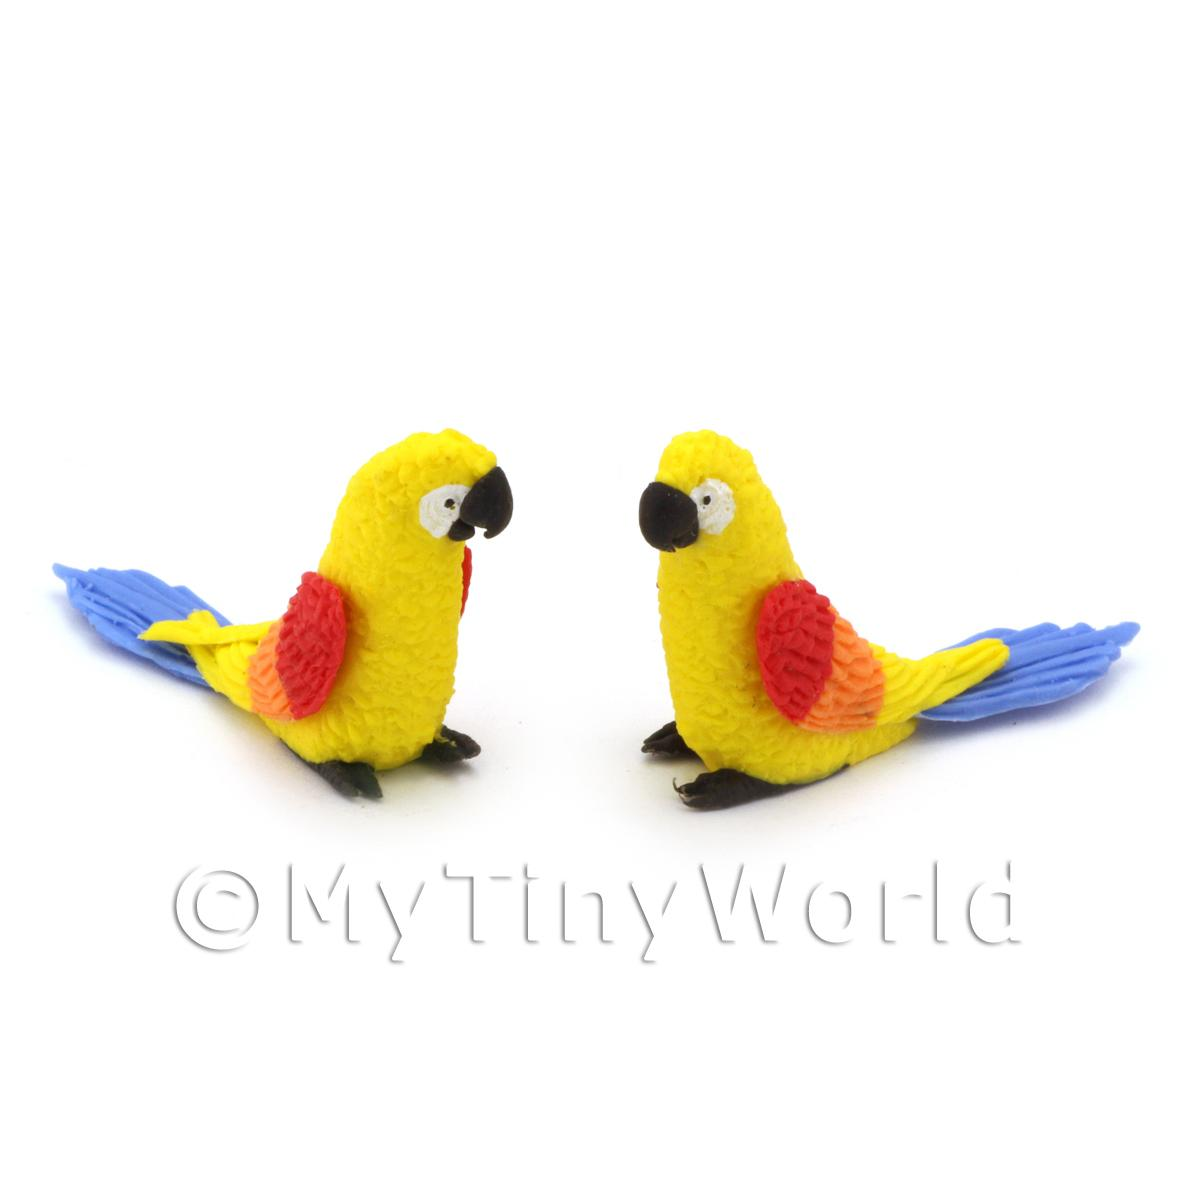 2 Yellow Dolls House Parrots with Multi-coloured Wings and Blue Tails